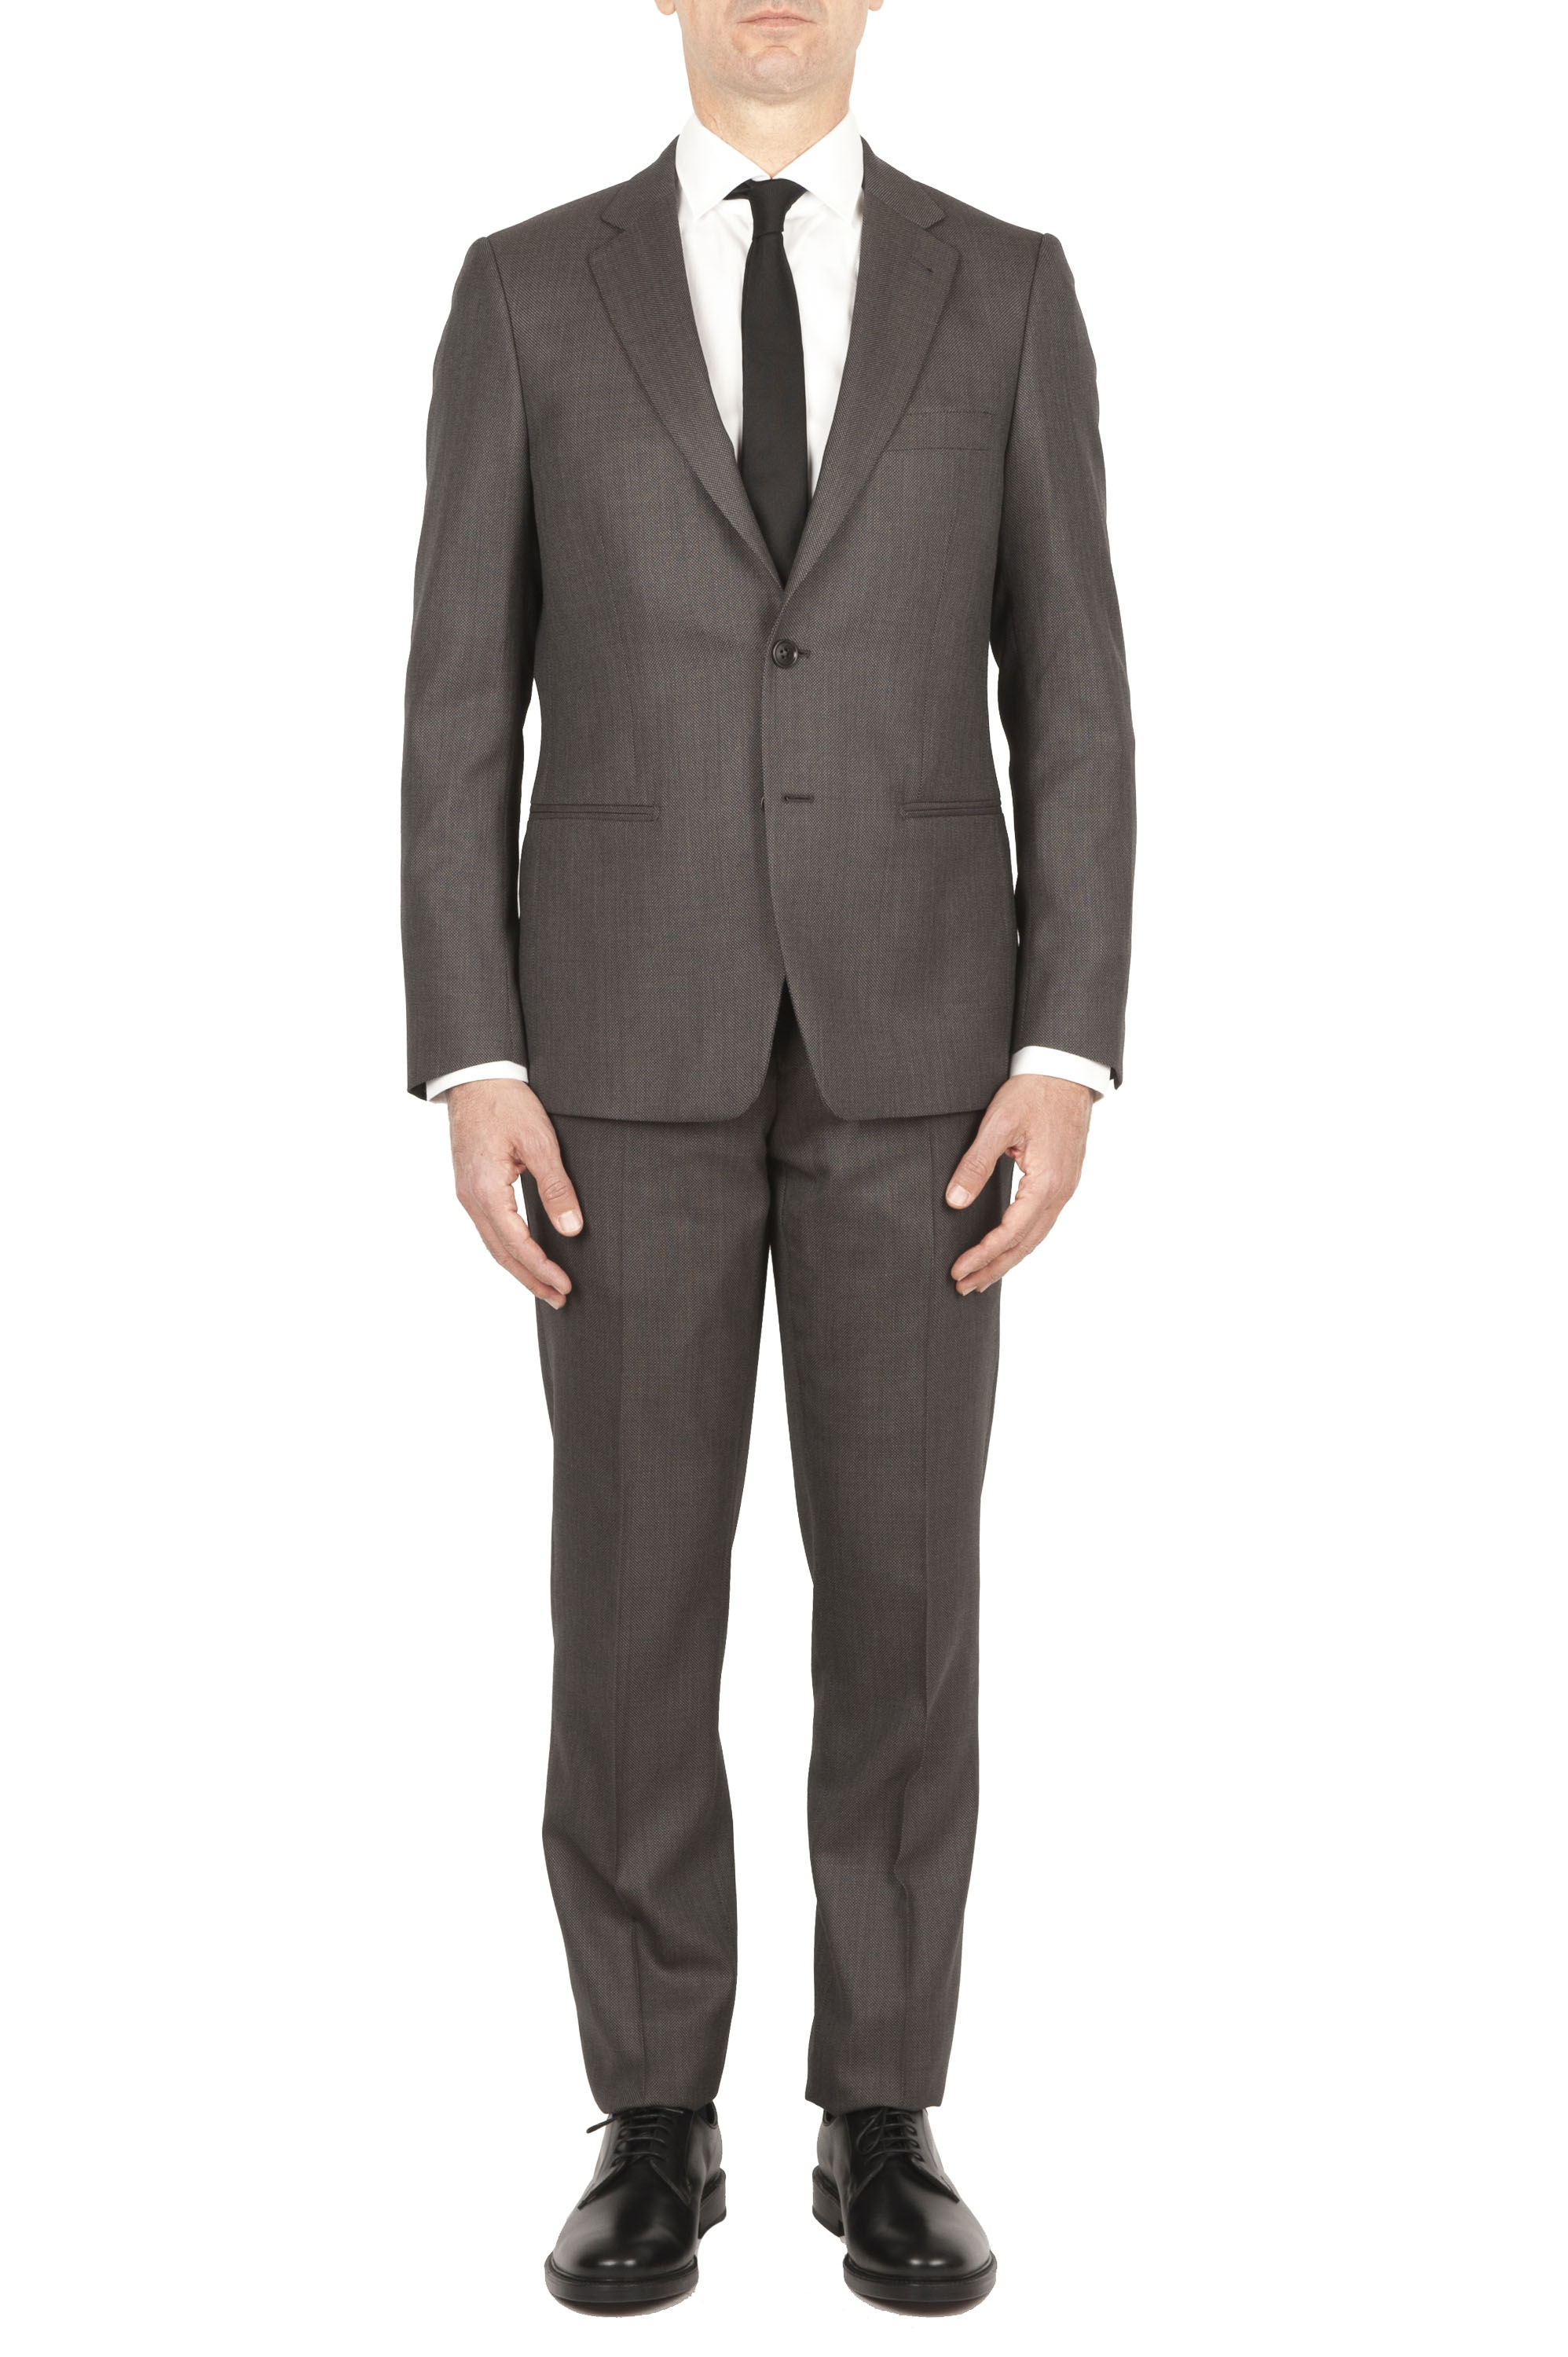 SBU 01589_19AW Men's brown cool wool formal suit partridge eye blazer and trouser 01